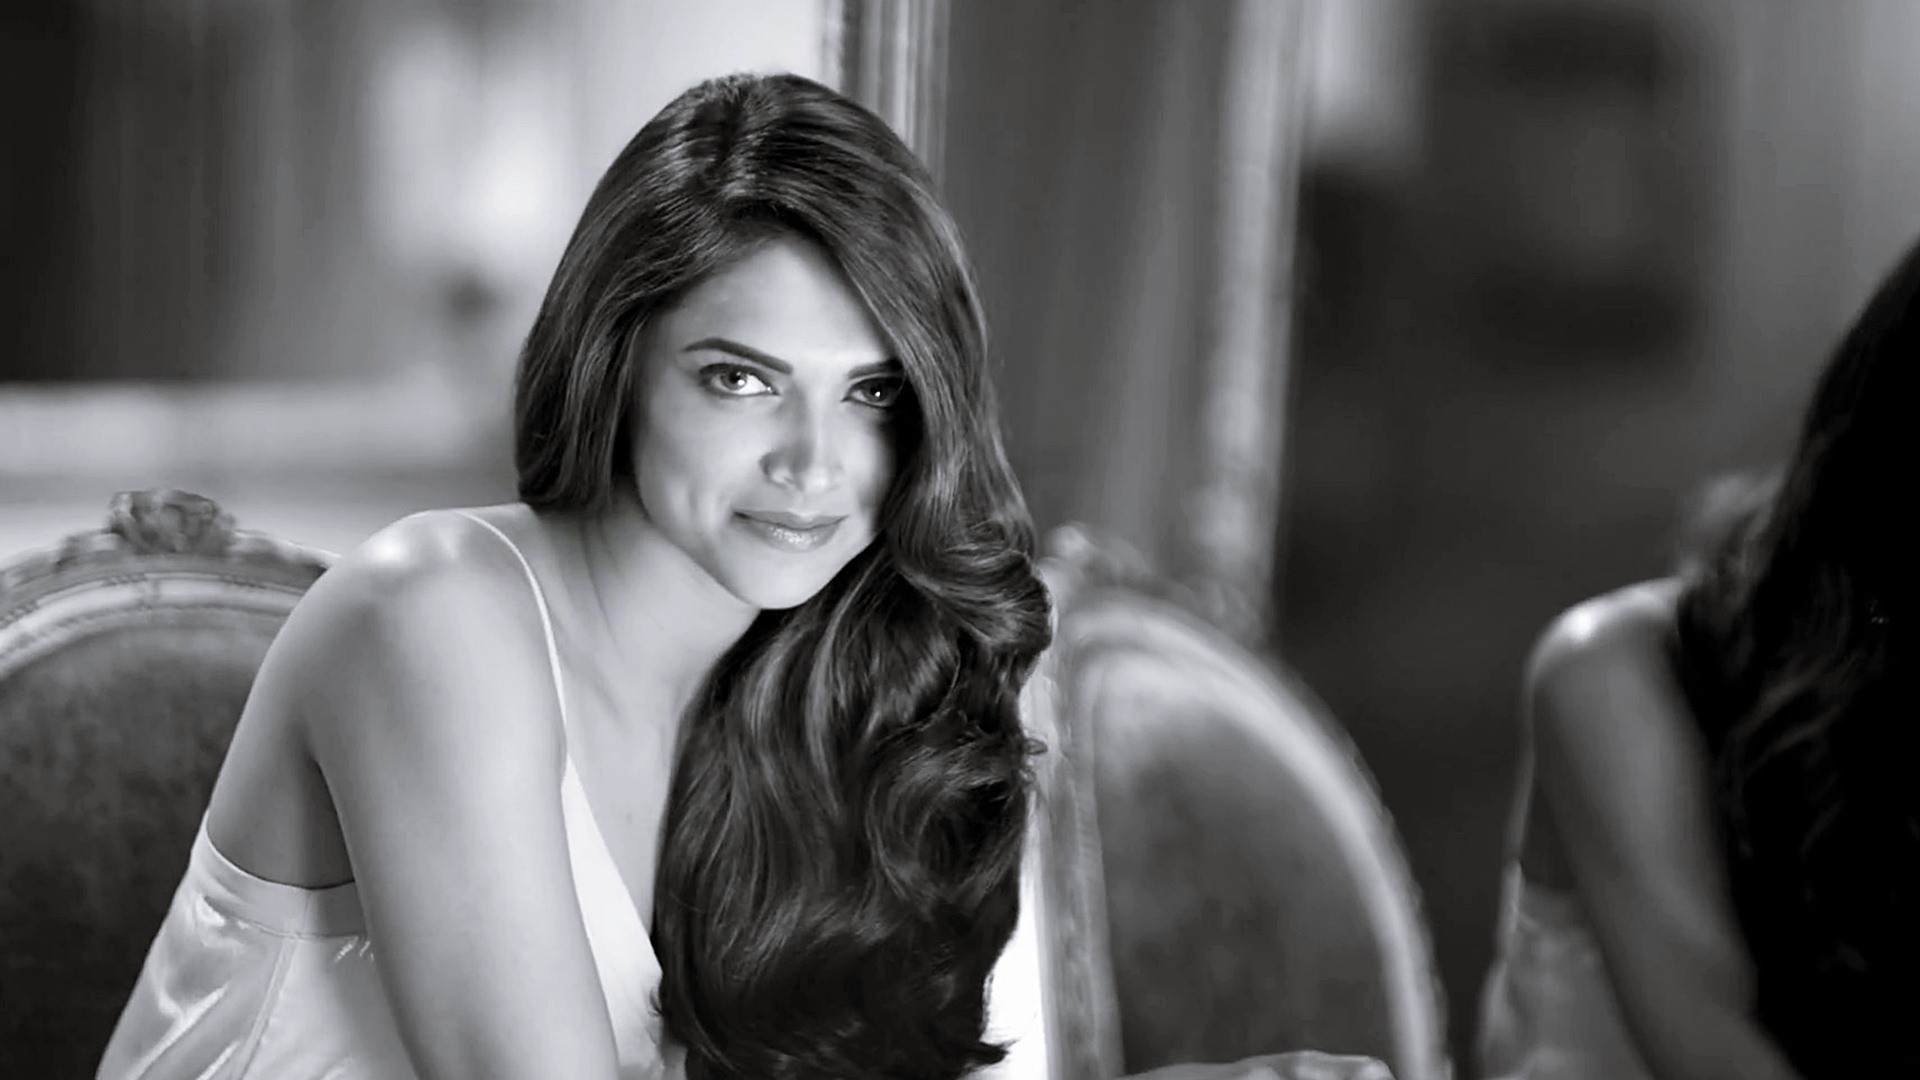 Black White Picture Beauty Deepika Padukone Free Hd